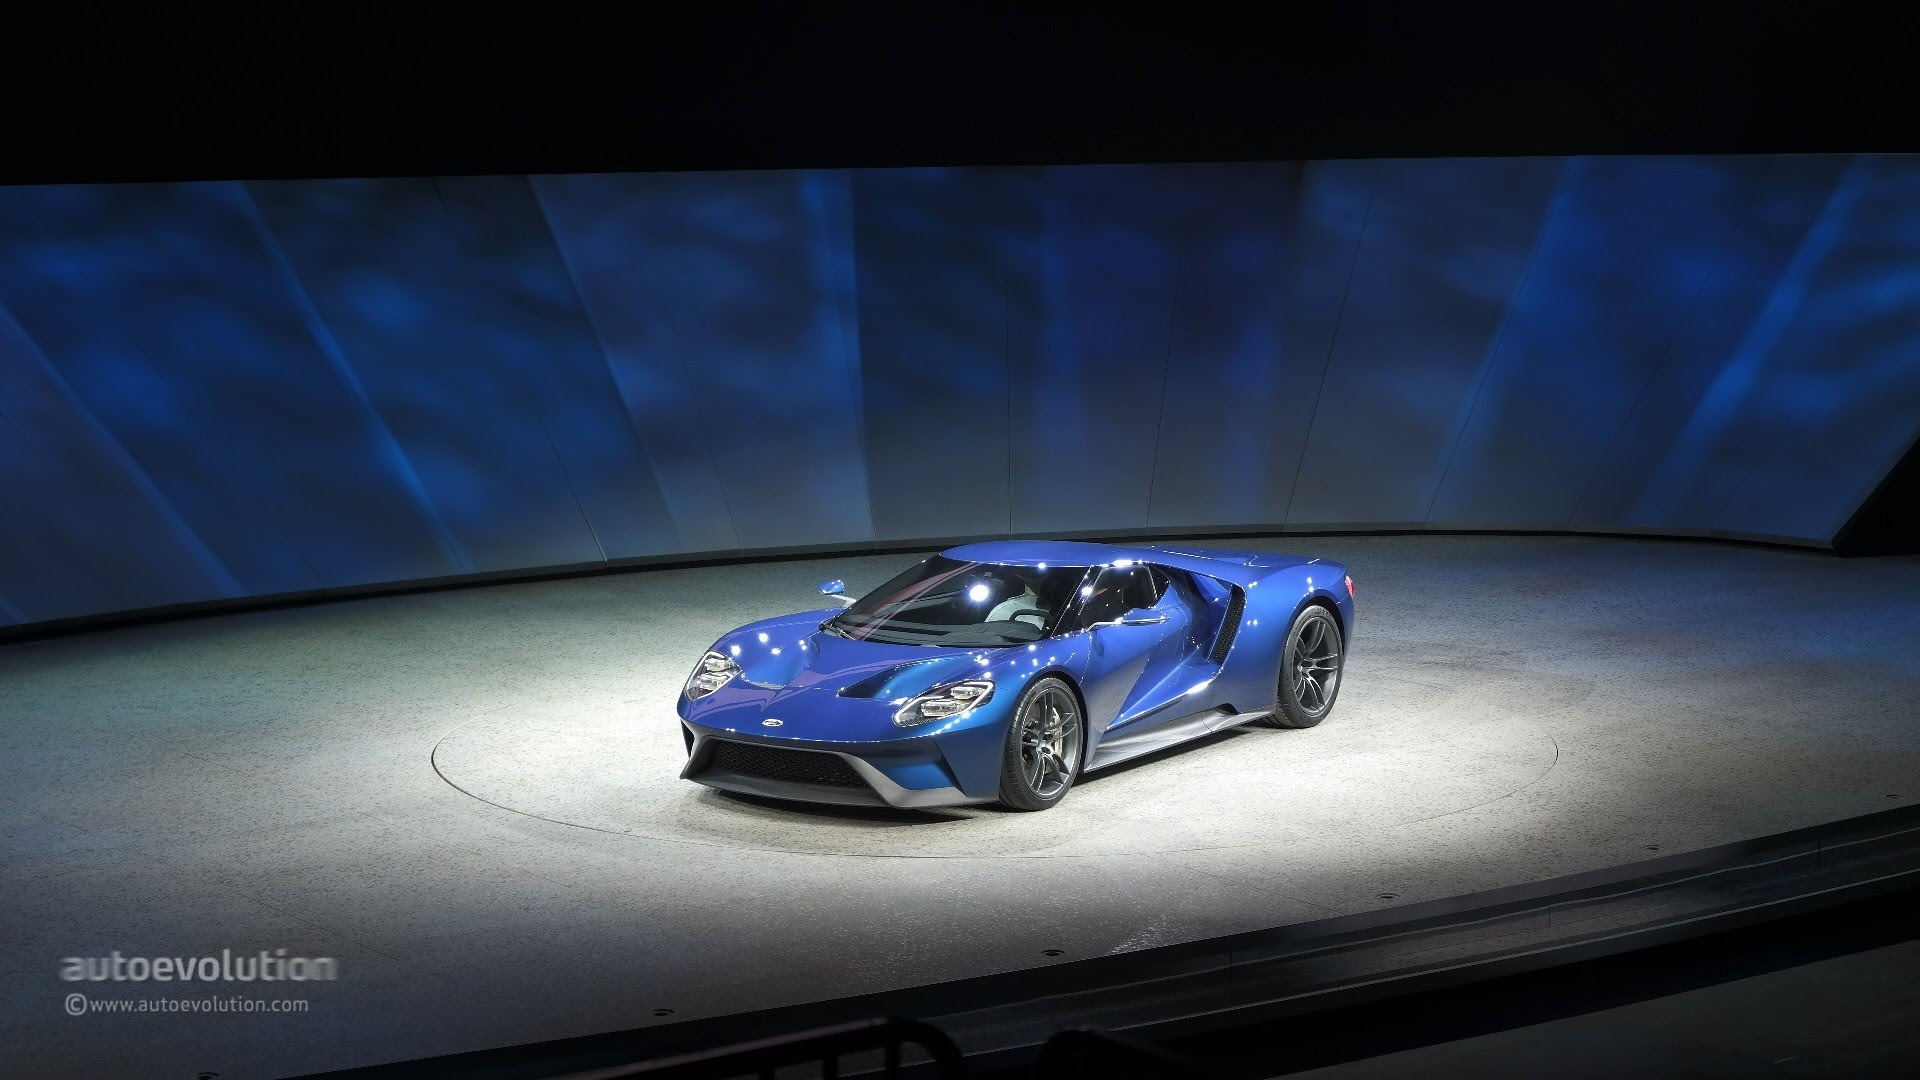 2017 Ford GT Supercar Teased in Forza Motorsport 6 Trailer - Video ...